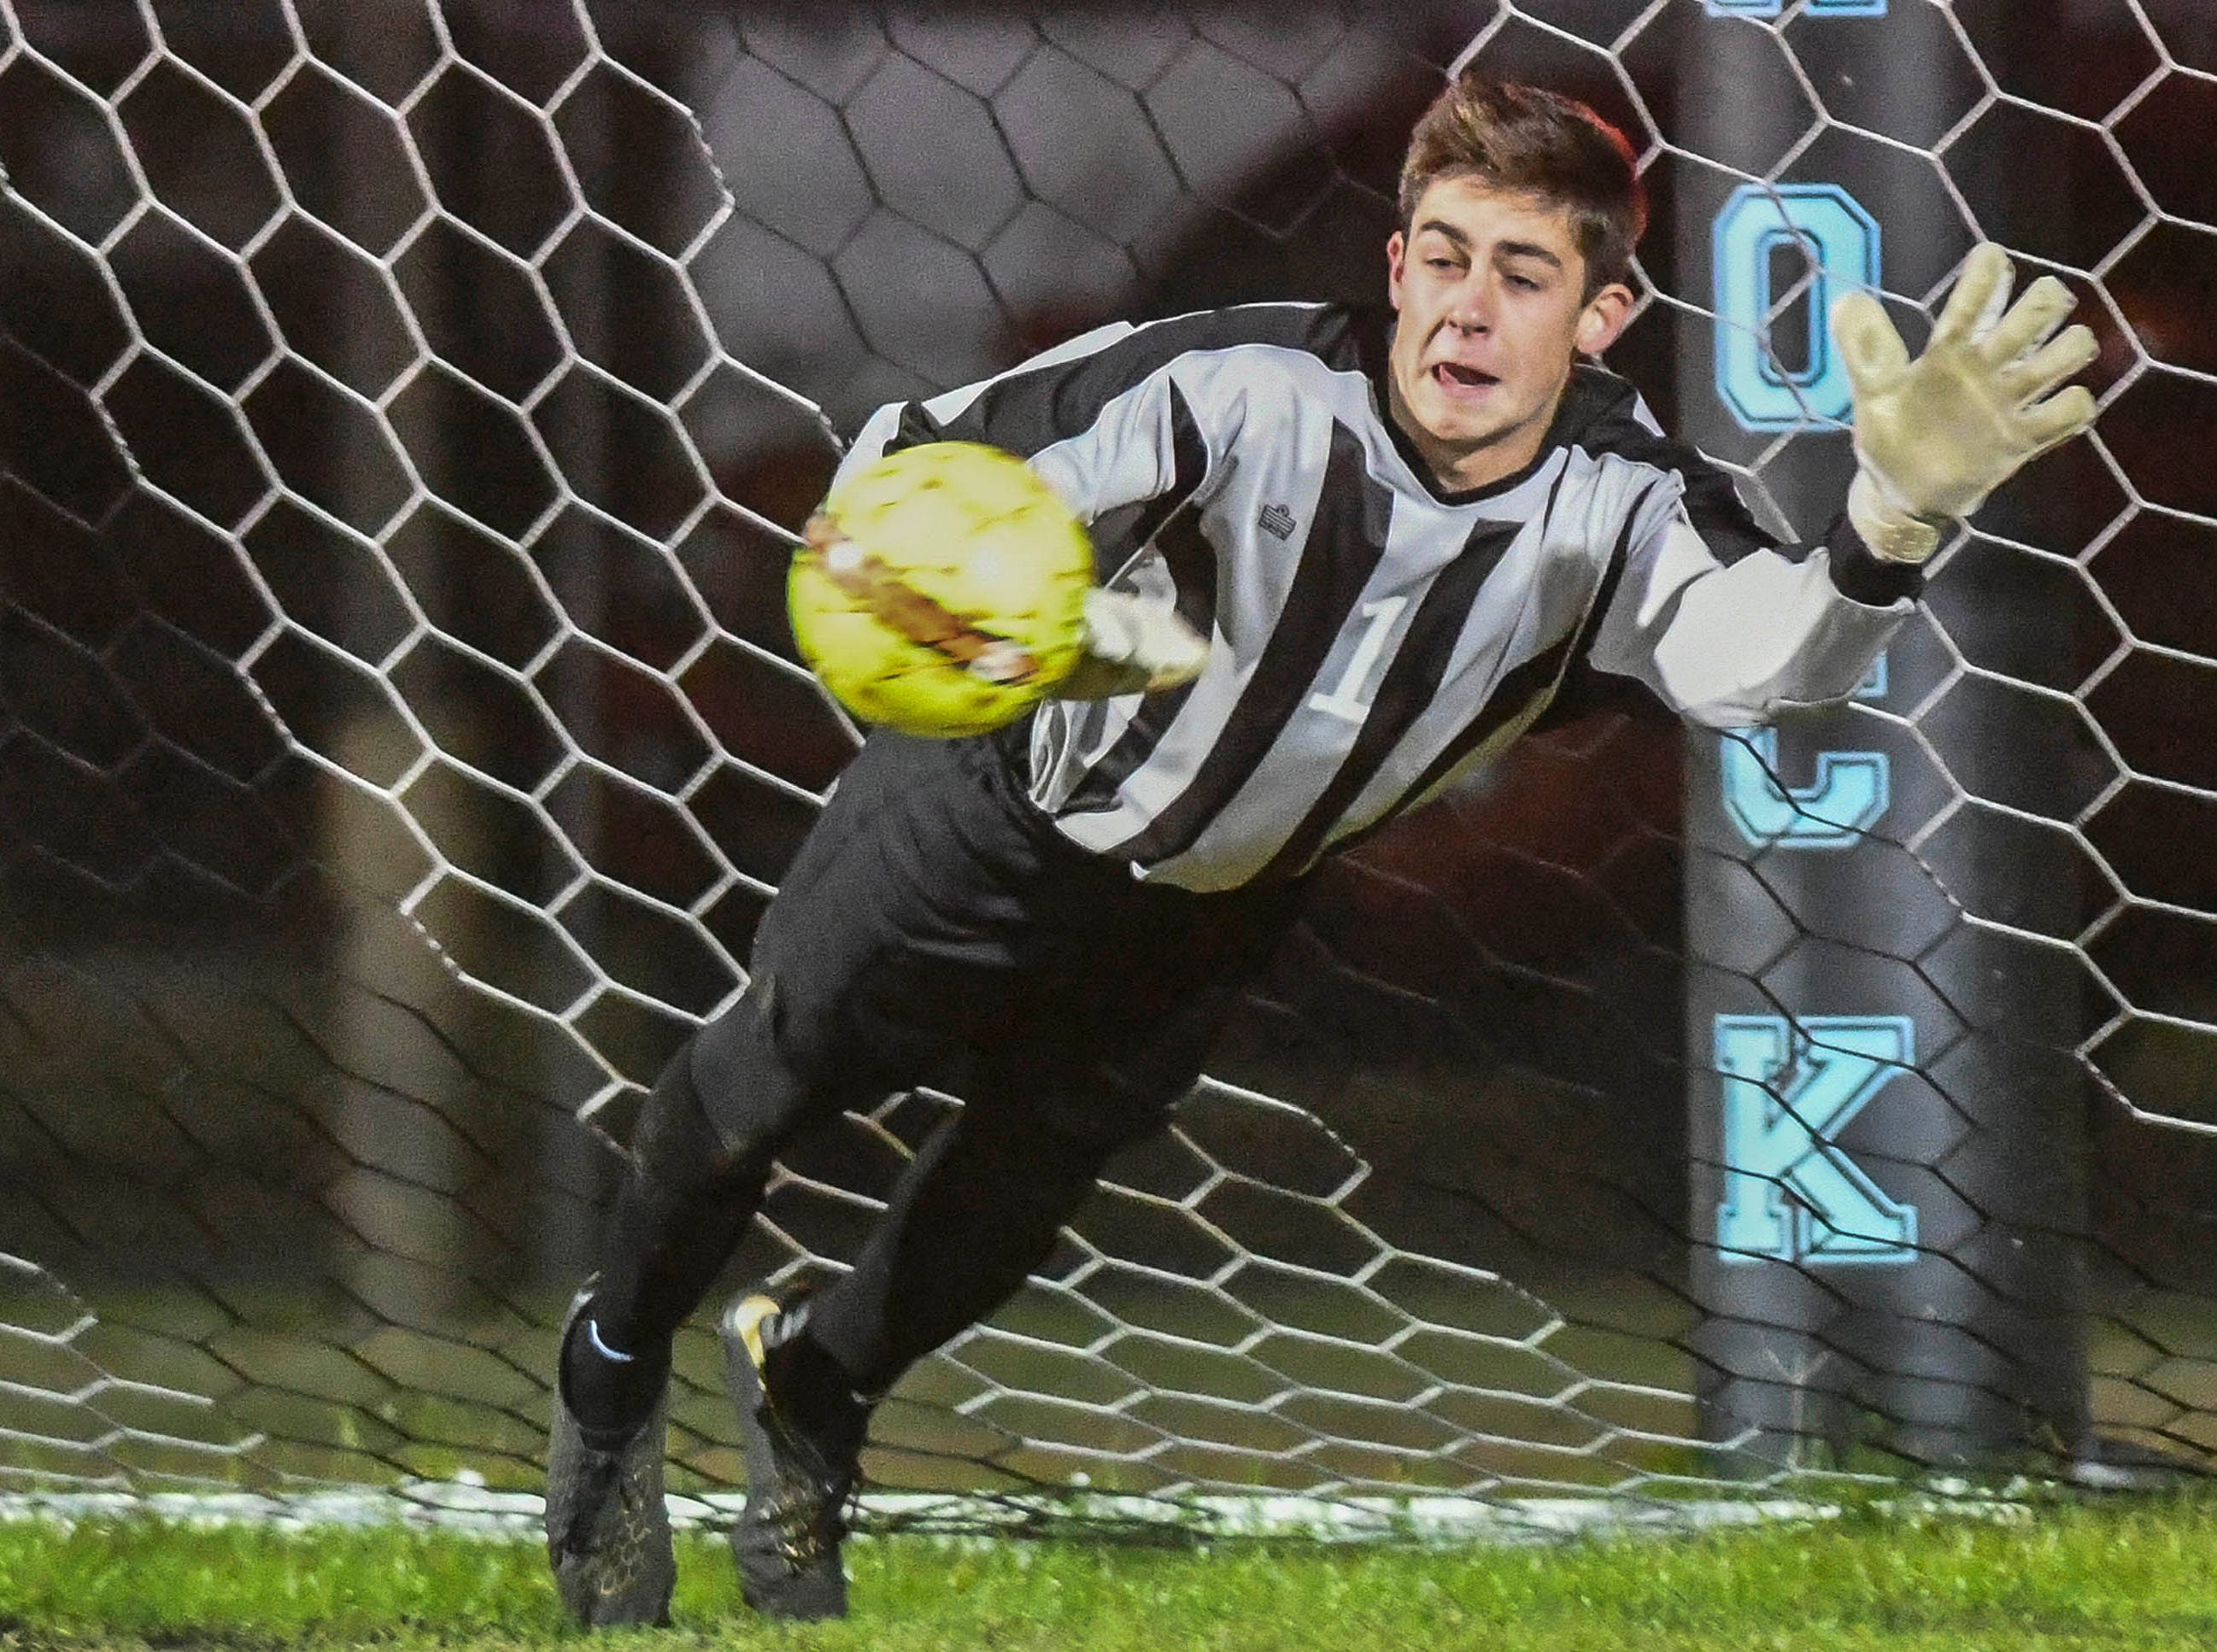 Titusville goalkeeper Roc Irlbeck blocks a penalty kick during Wednesday's District 12, Class 3A semifinal at McLarty Stadium